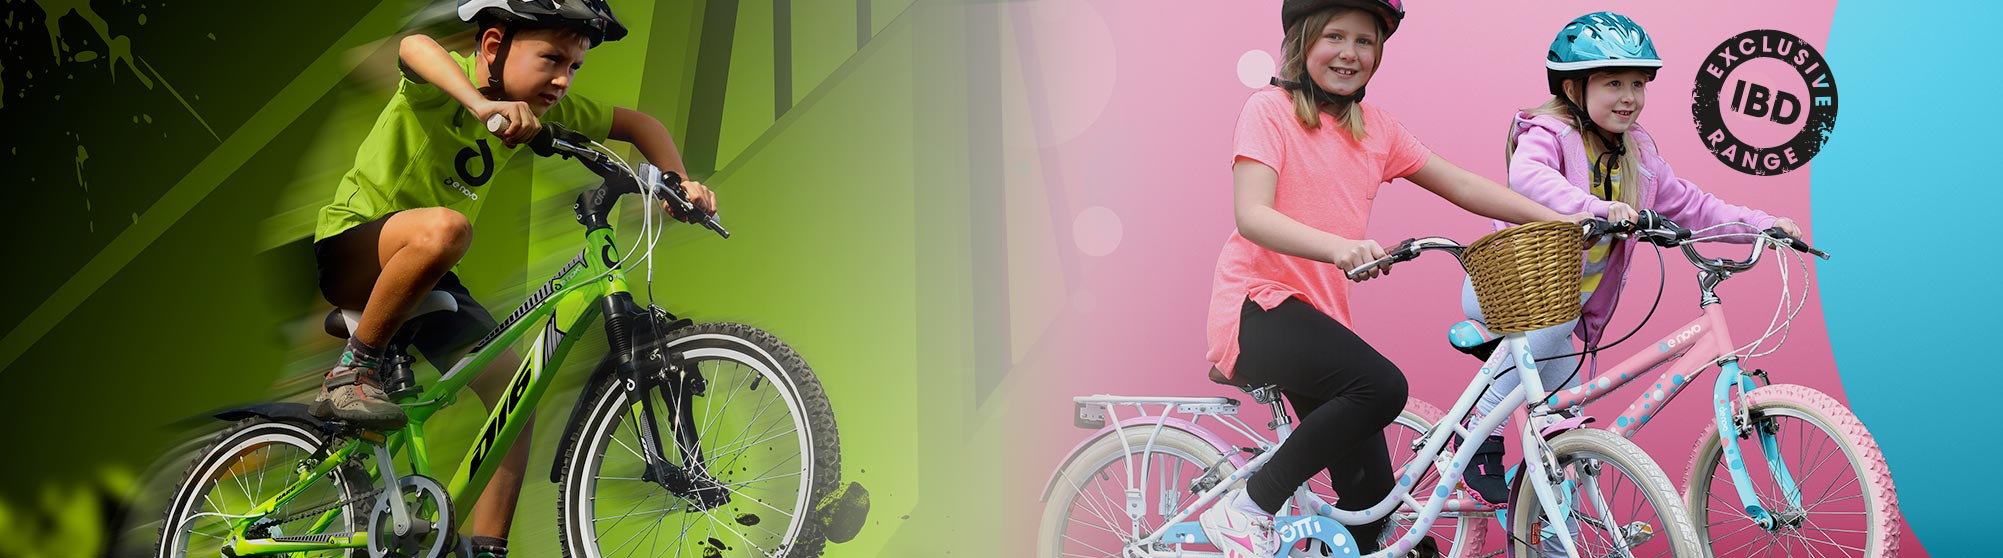 307cef6ab Rugged D-Bikes for boys and girl-focussed Dotti range both come in a range  of frame sizes to suit children of all ages and boast top specification as  ...